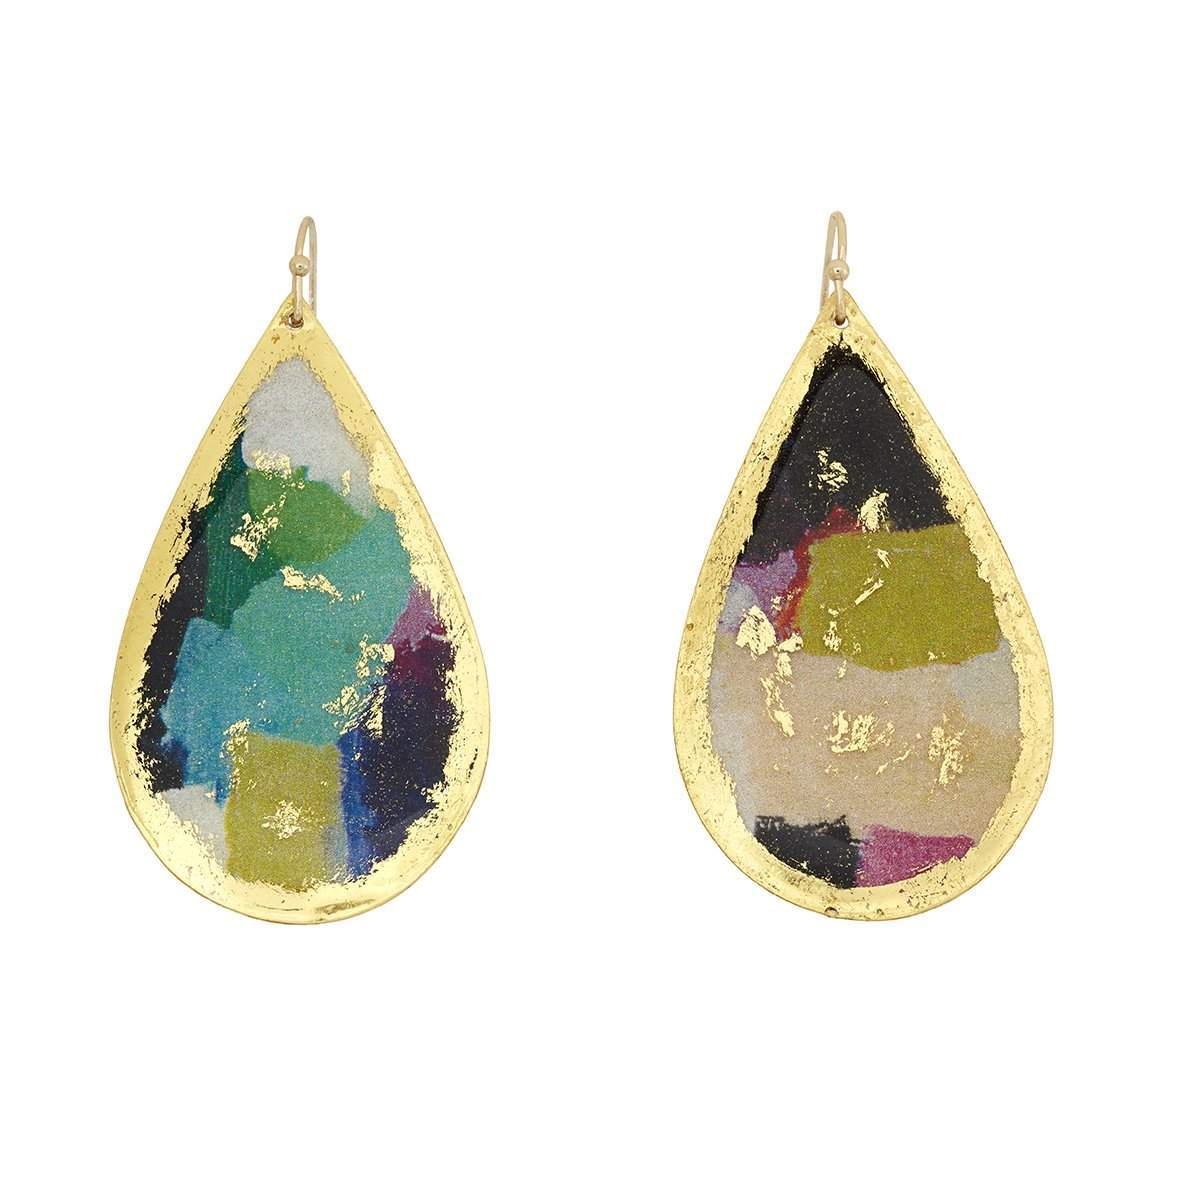 Berlin Gold Teardrop Earrings - VO416